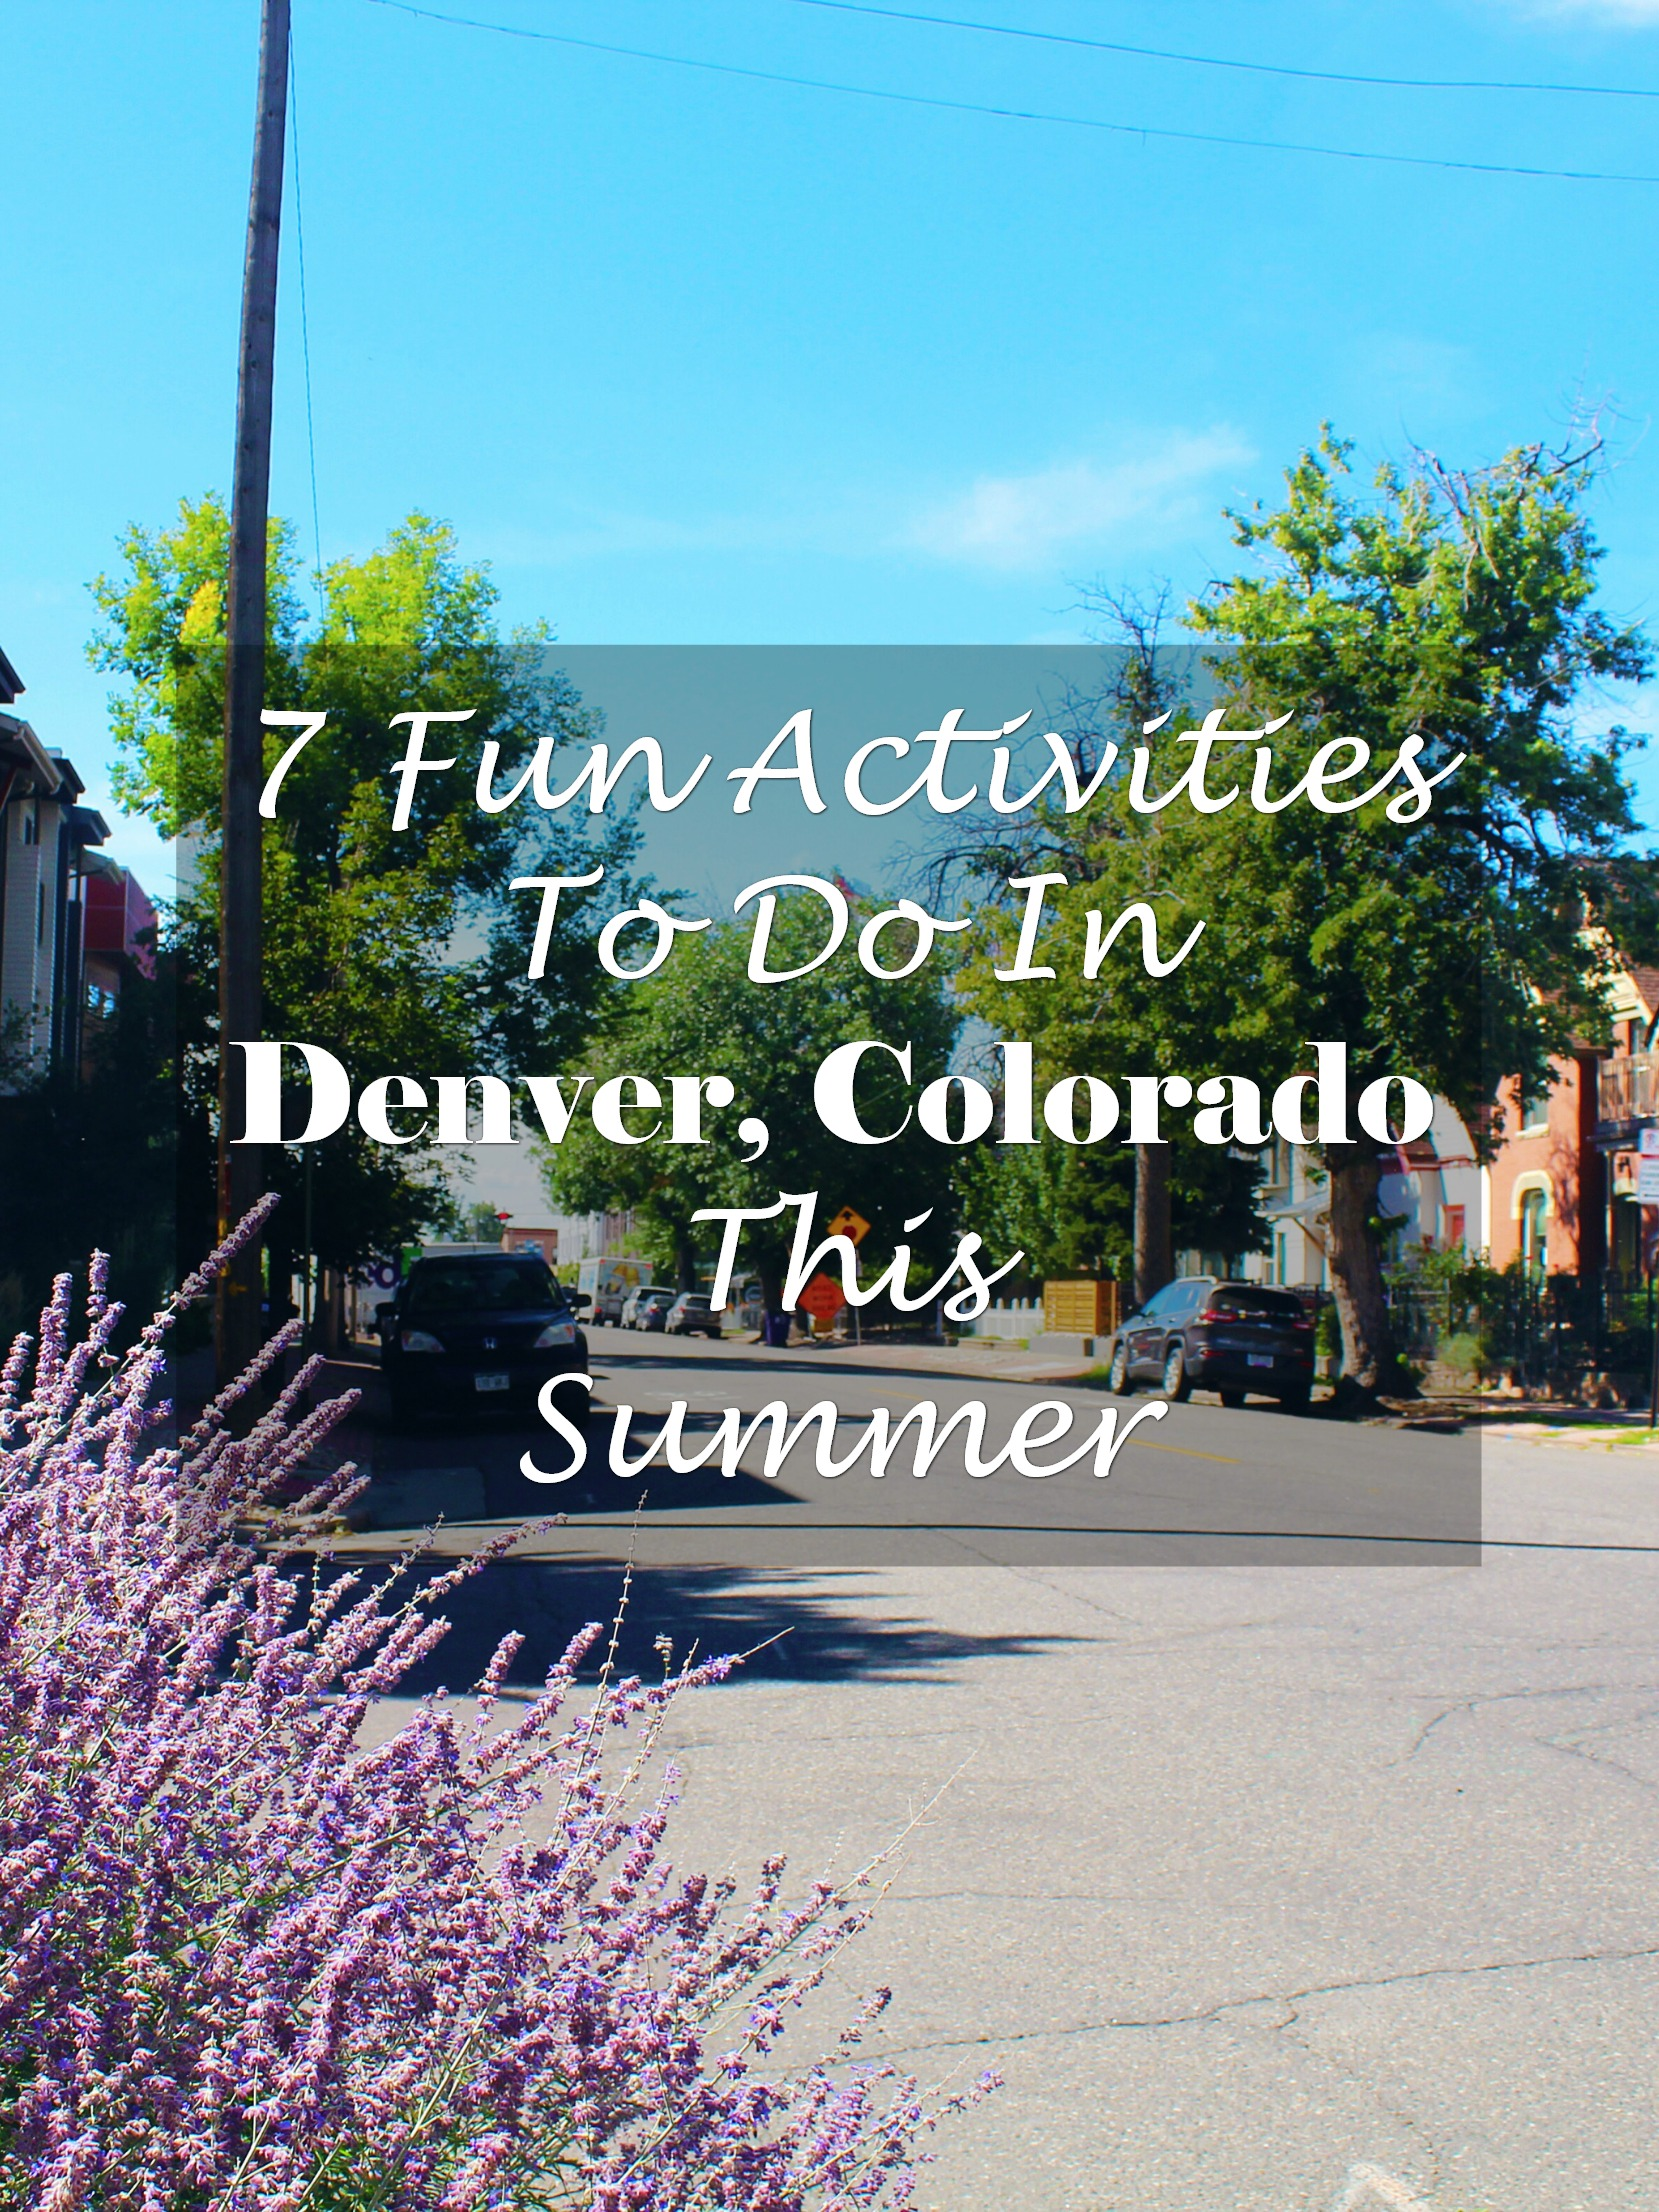 7-fun-activities-to-do-in-denver-colorado-this-summer.jpg